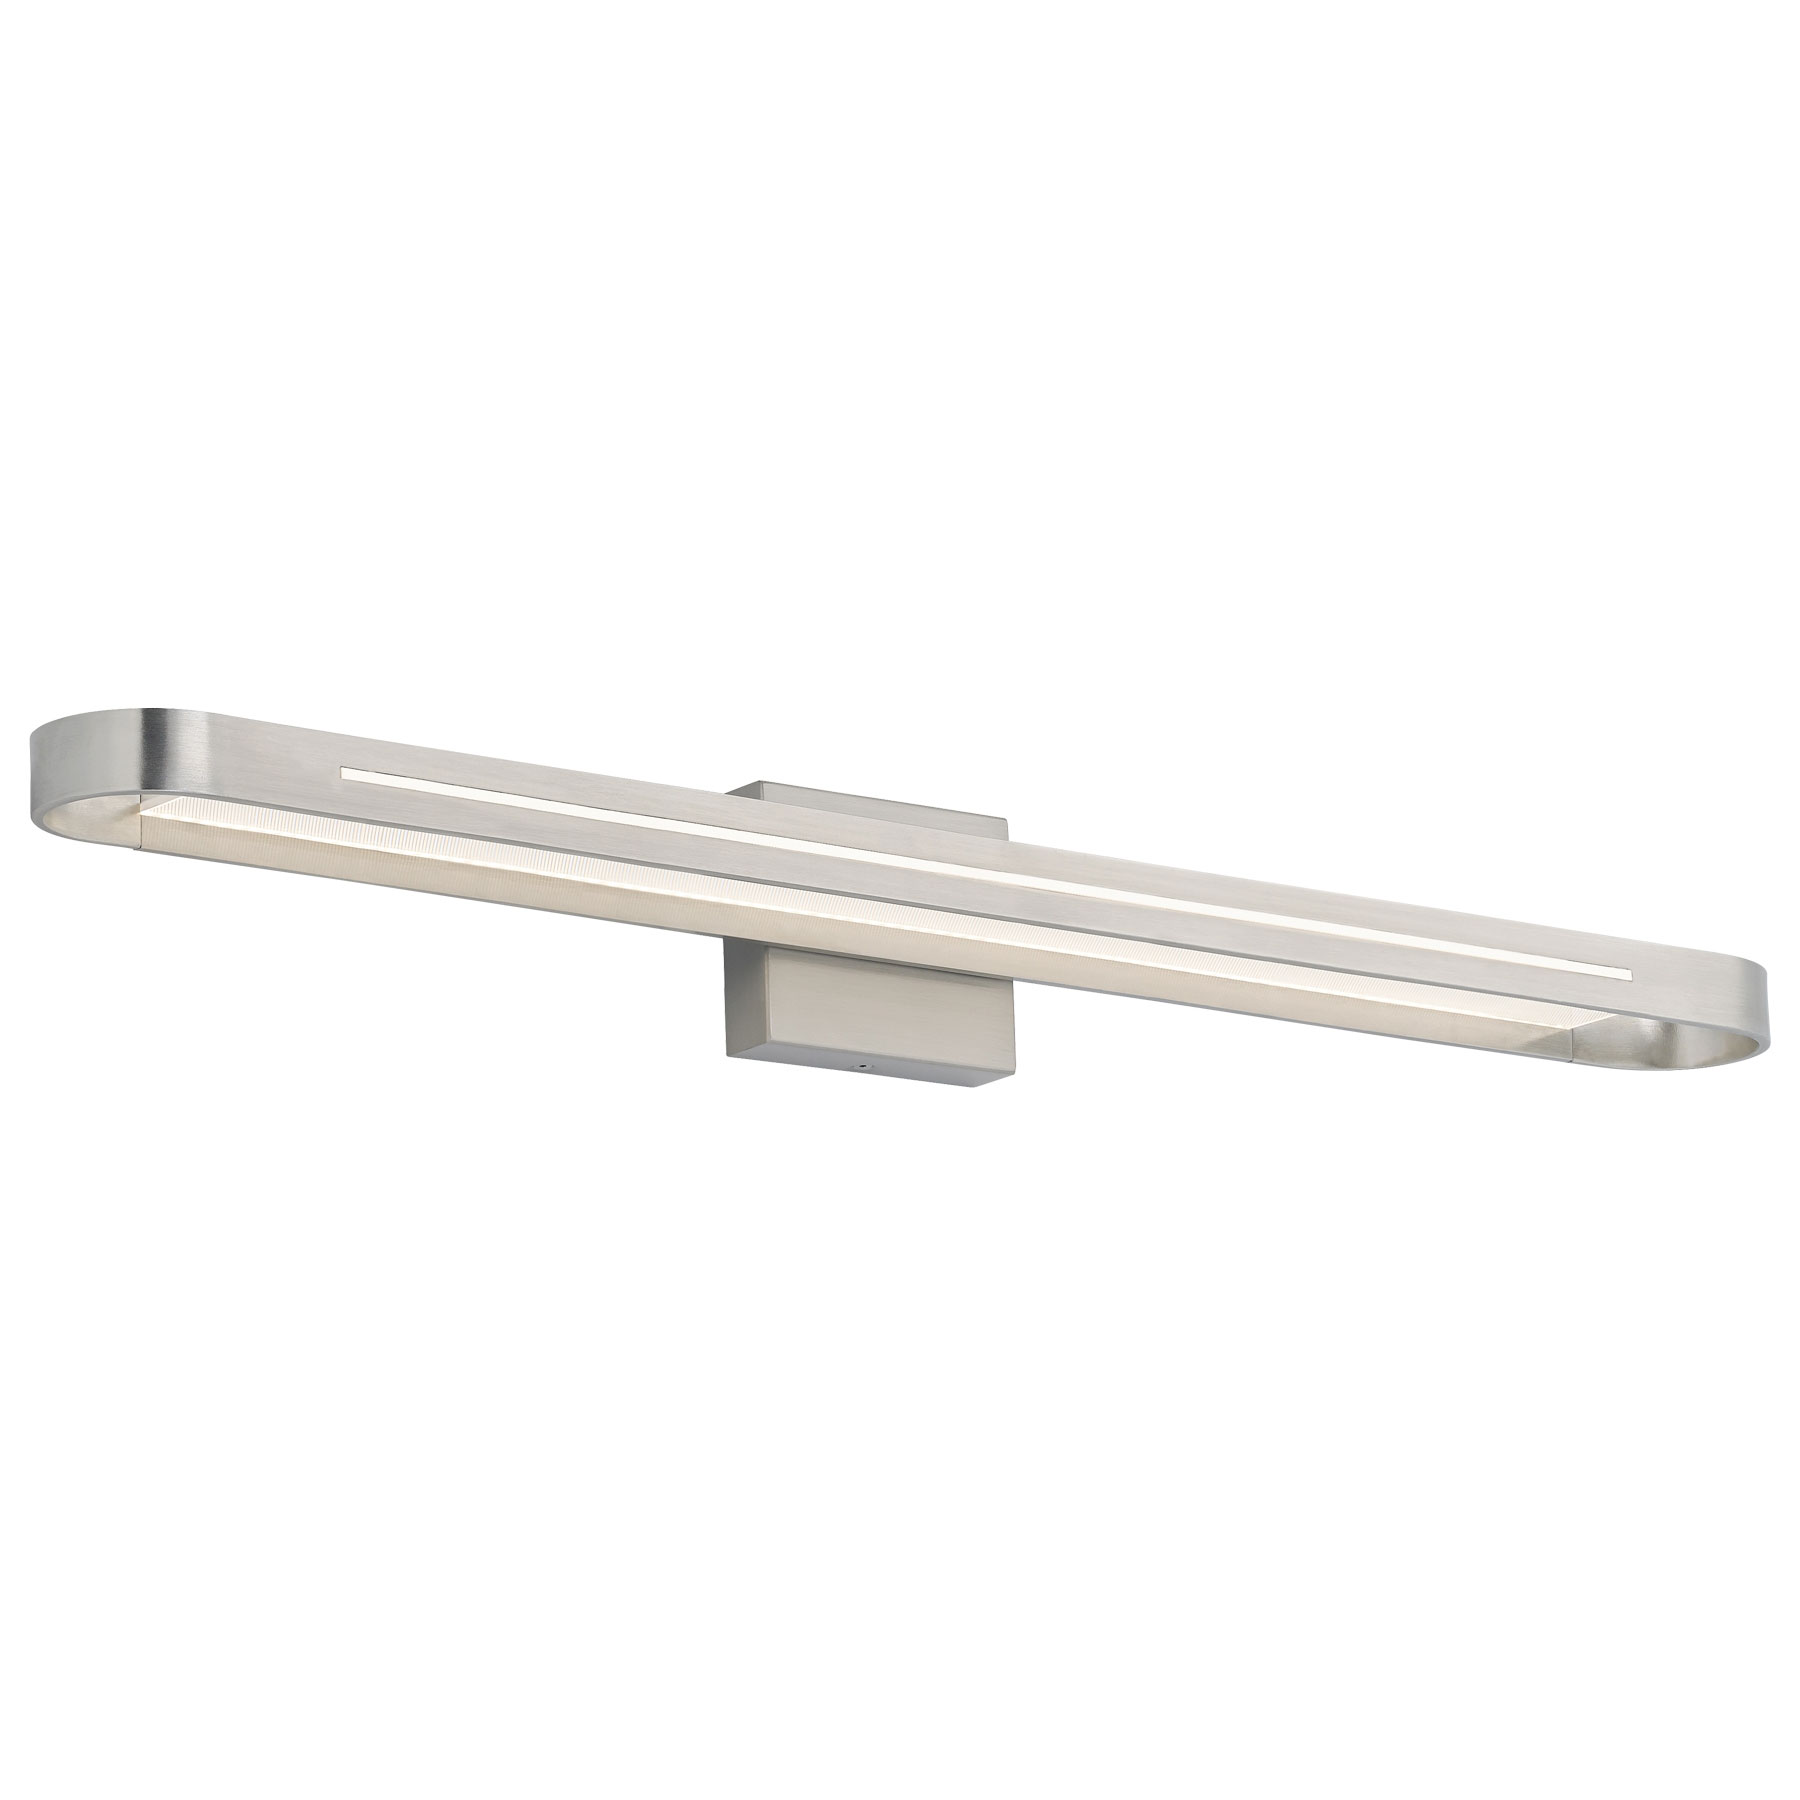 Beau Vertura Bath Bar By LBL Lighting | BA868SCLED830